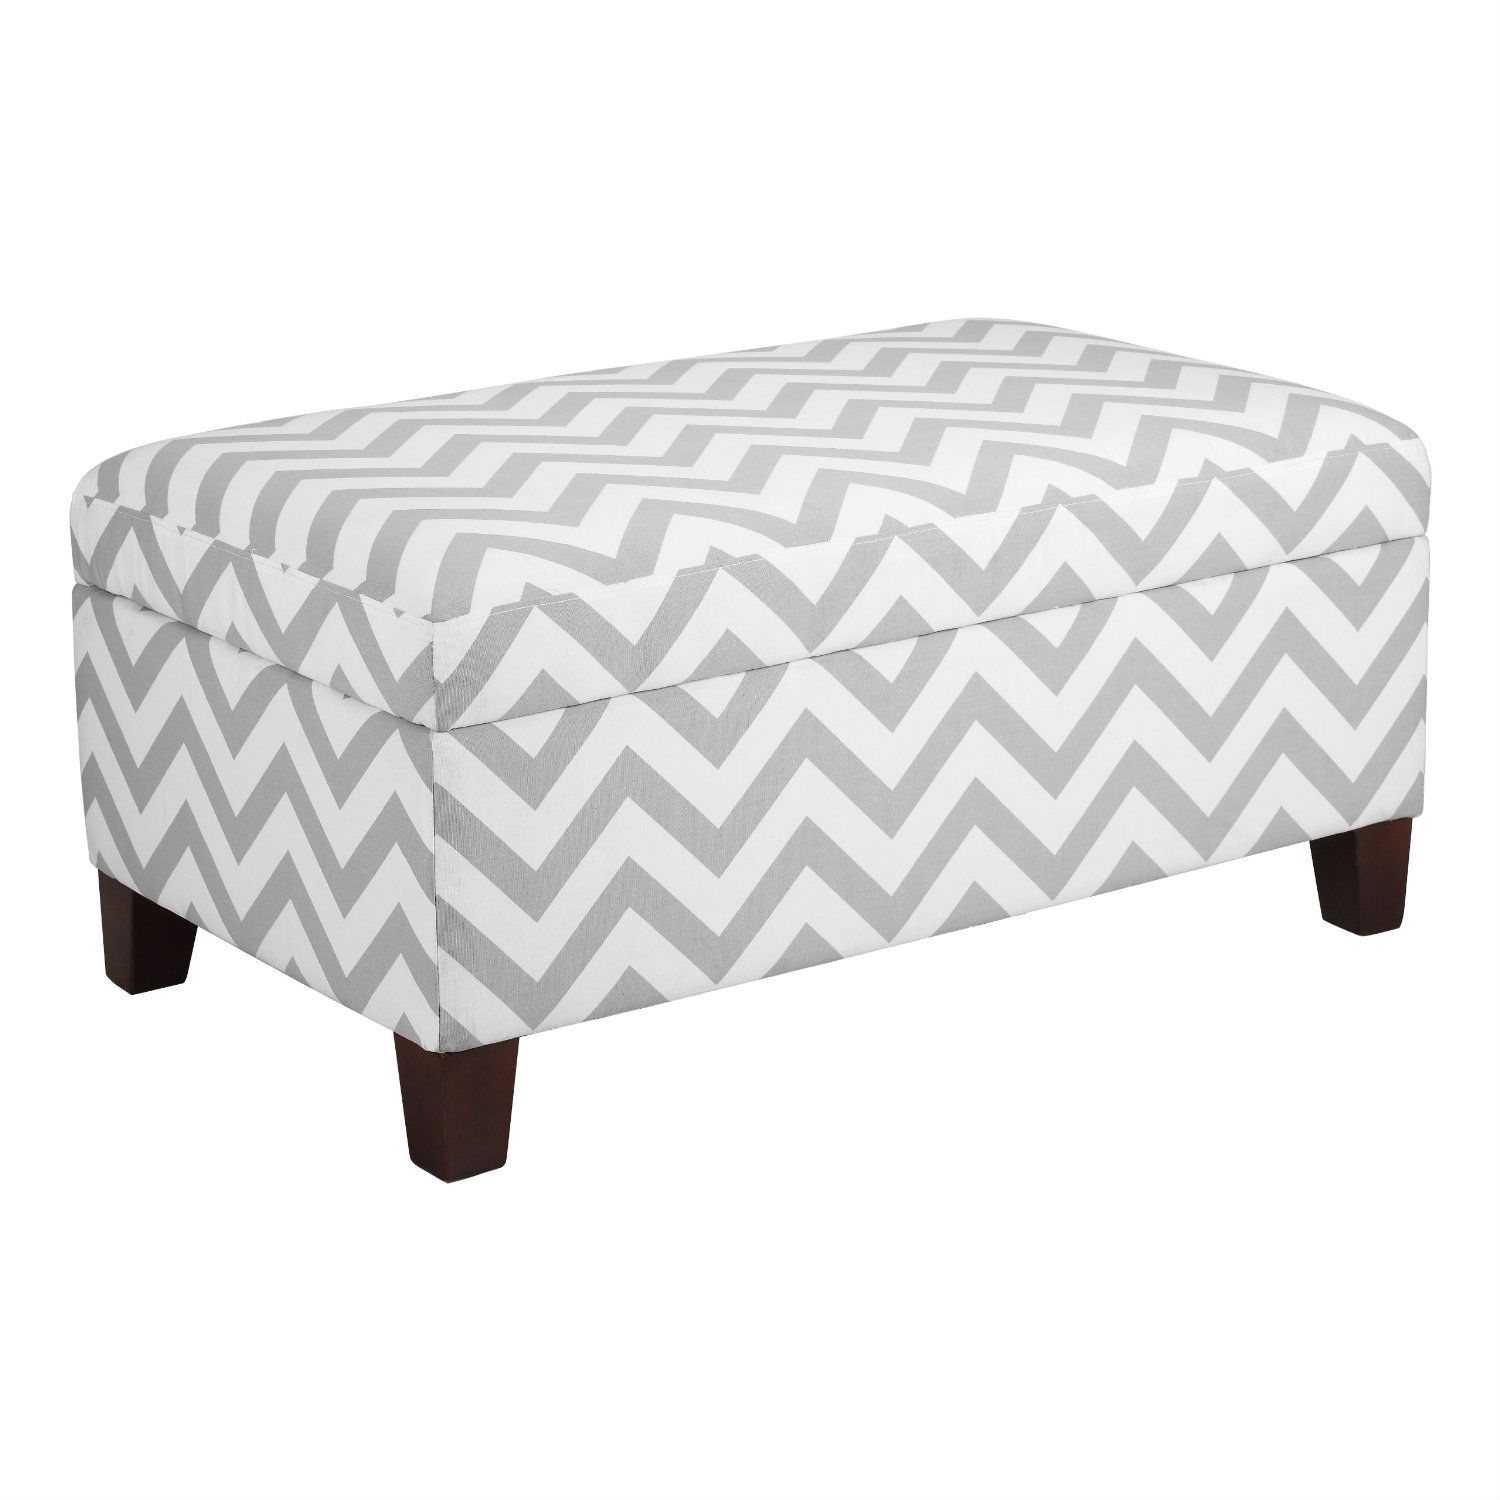 Attractive Padded Ottoman Bench Part - 10: Retail Price: $199.00